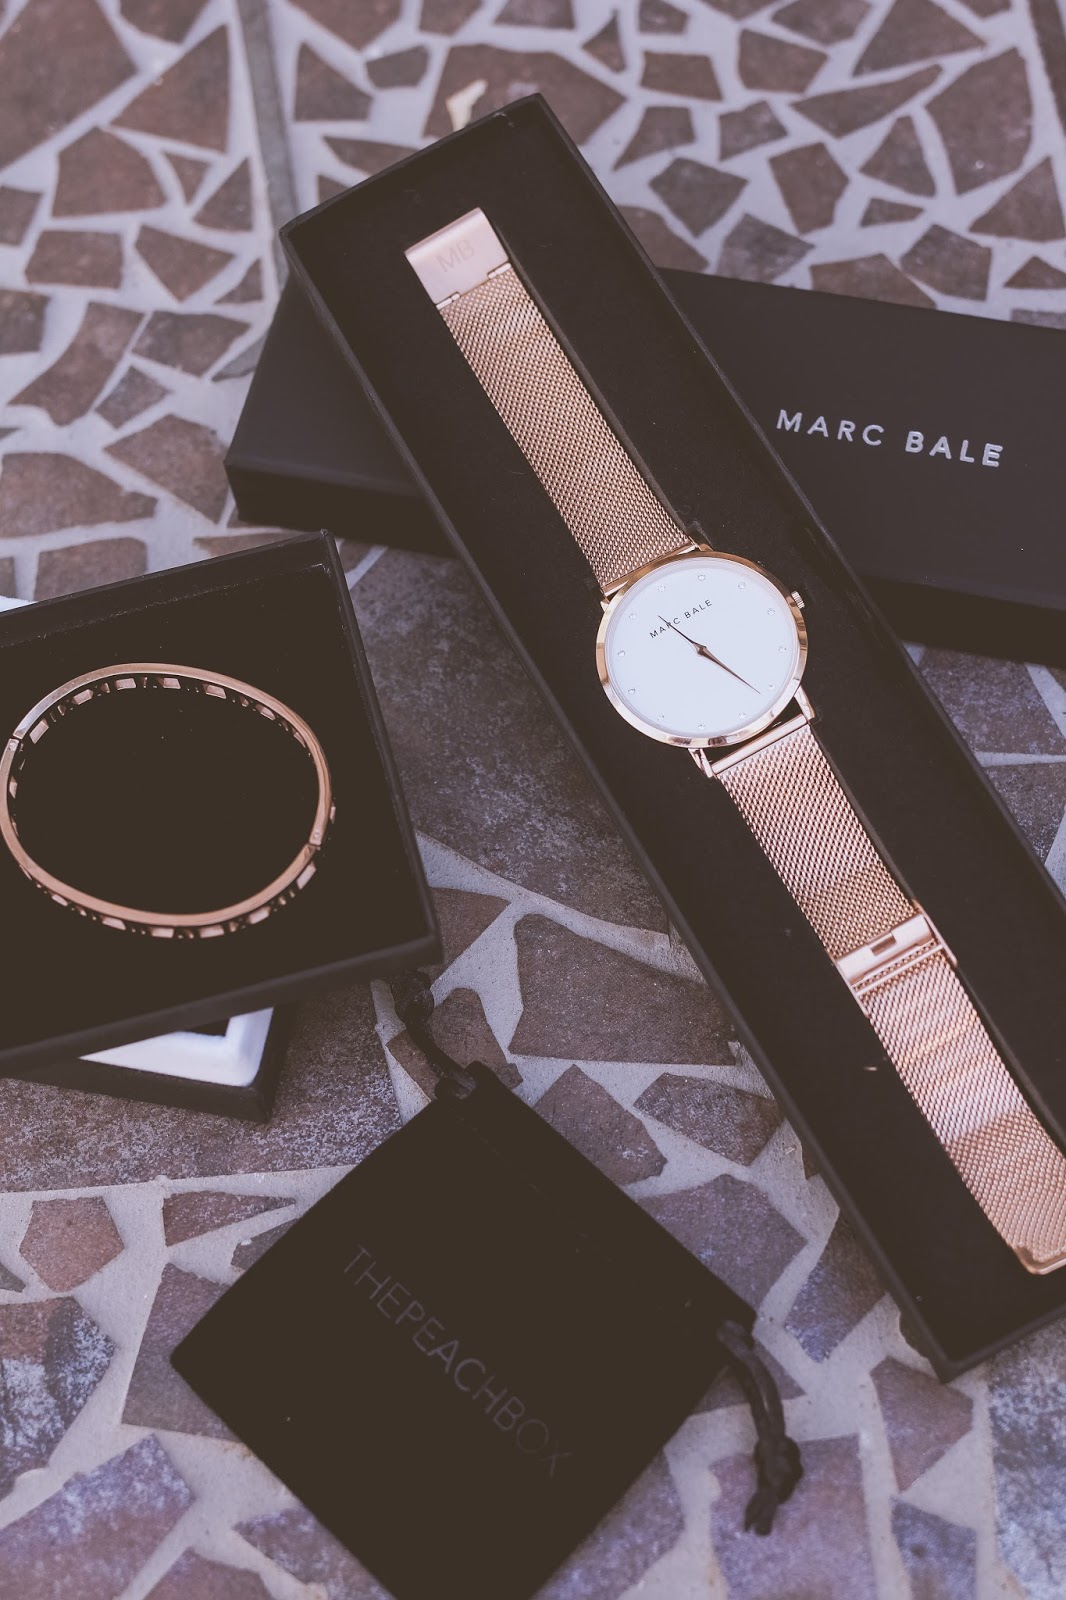 Liana of @findingfemme wears rose gold Marc Bale watch from The Peach Box